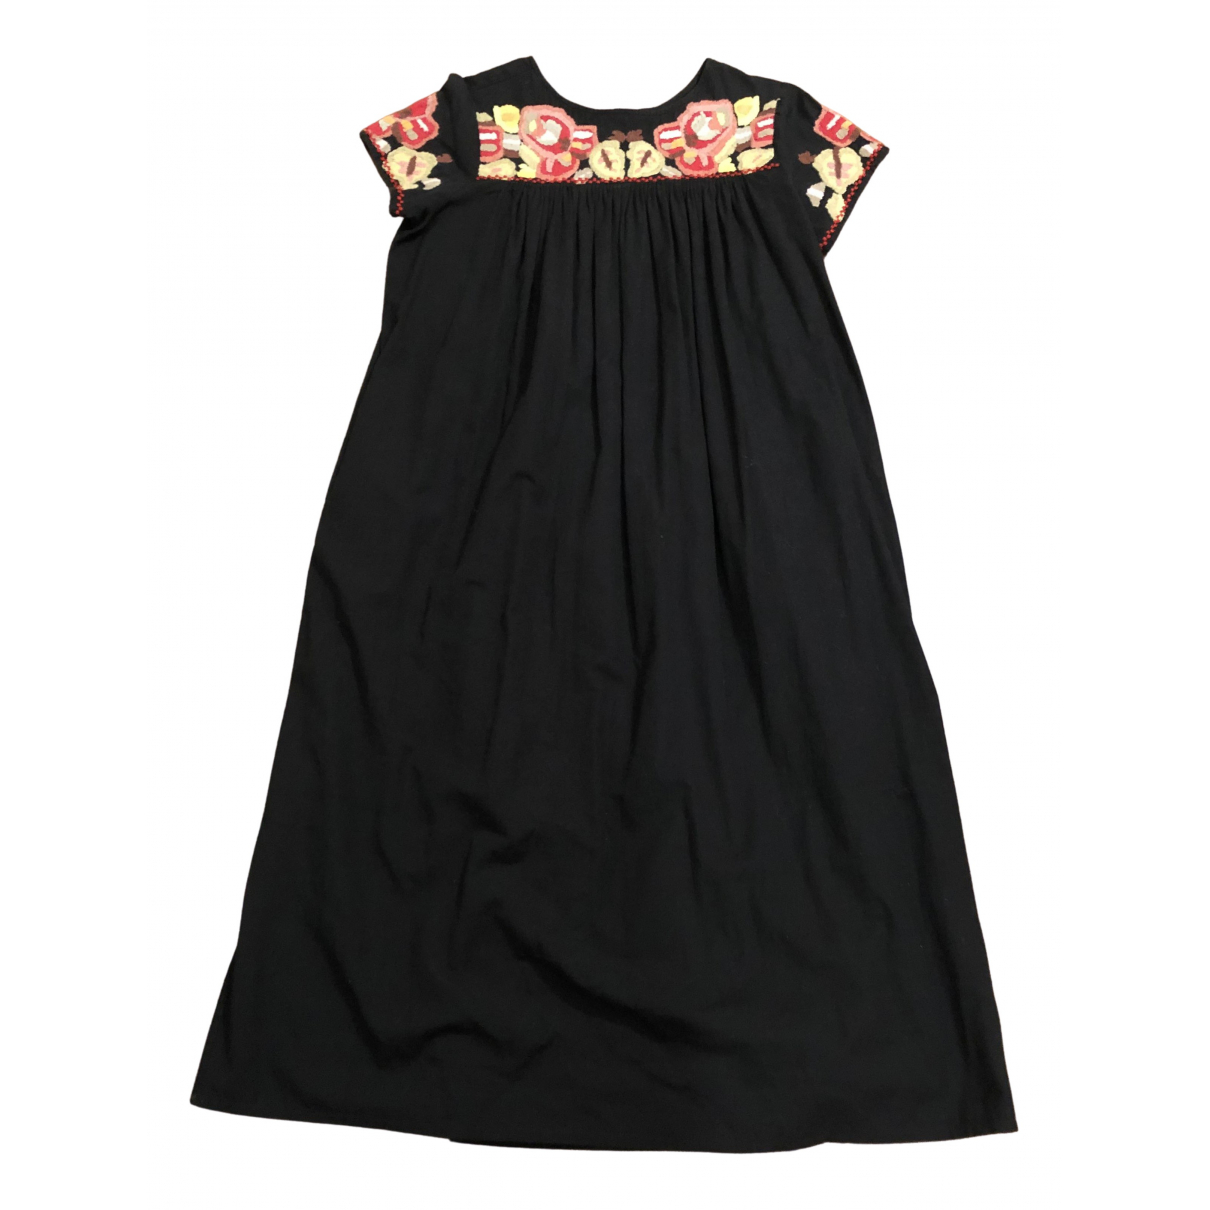 Attic And Barn \N Black Cotton dress for Women 44 IT